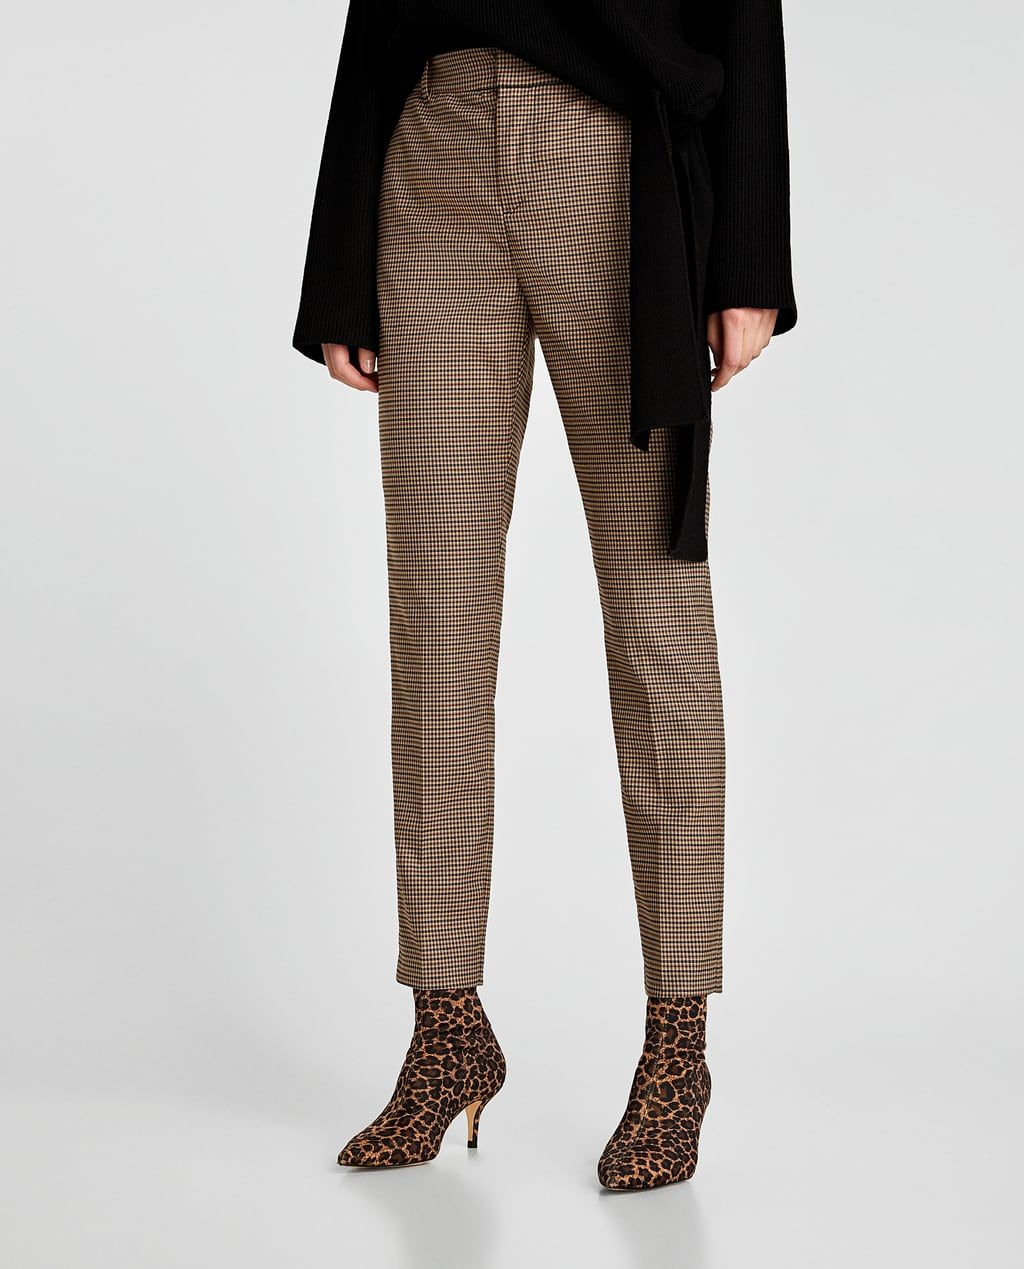 d1776d17 Image 2 of HIGH WAIST CHECKED TROUSERS from Zara   FASHION   Fashion ...